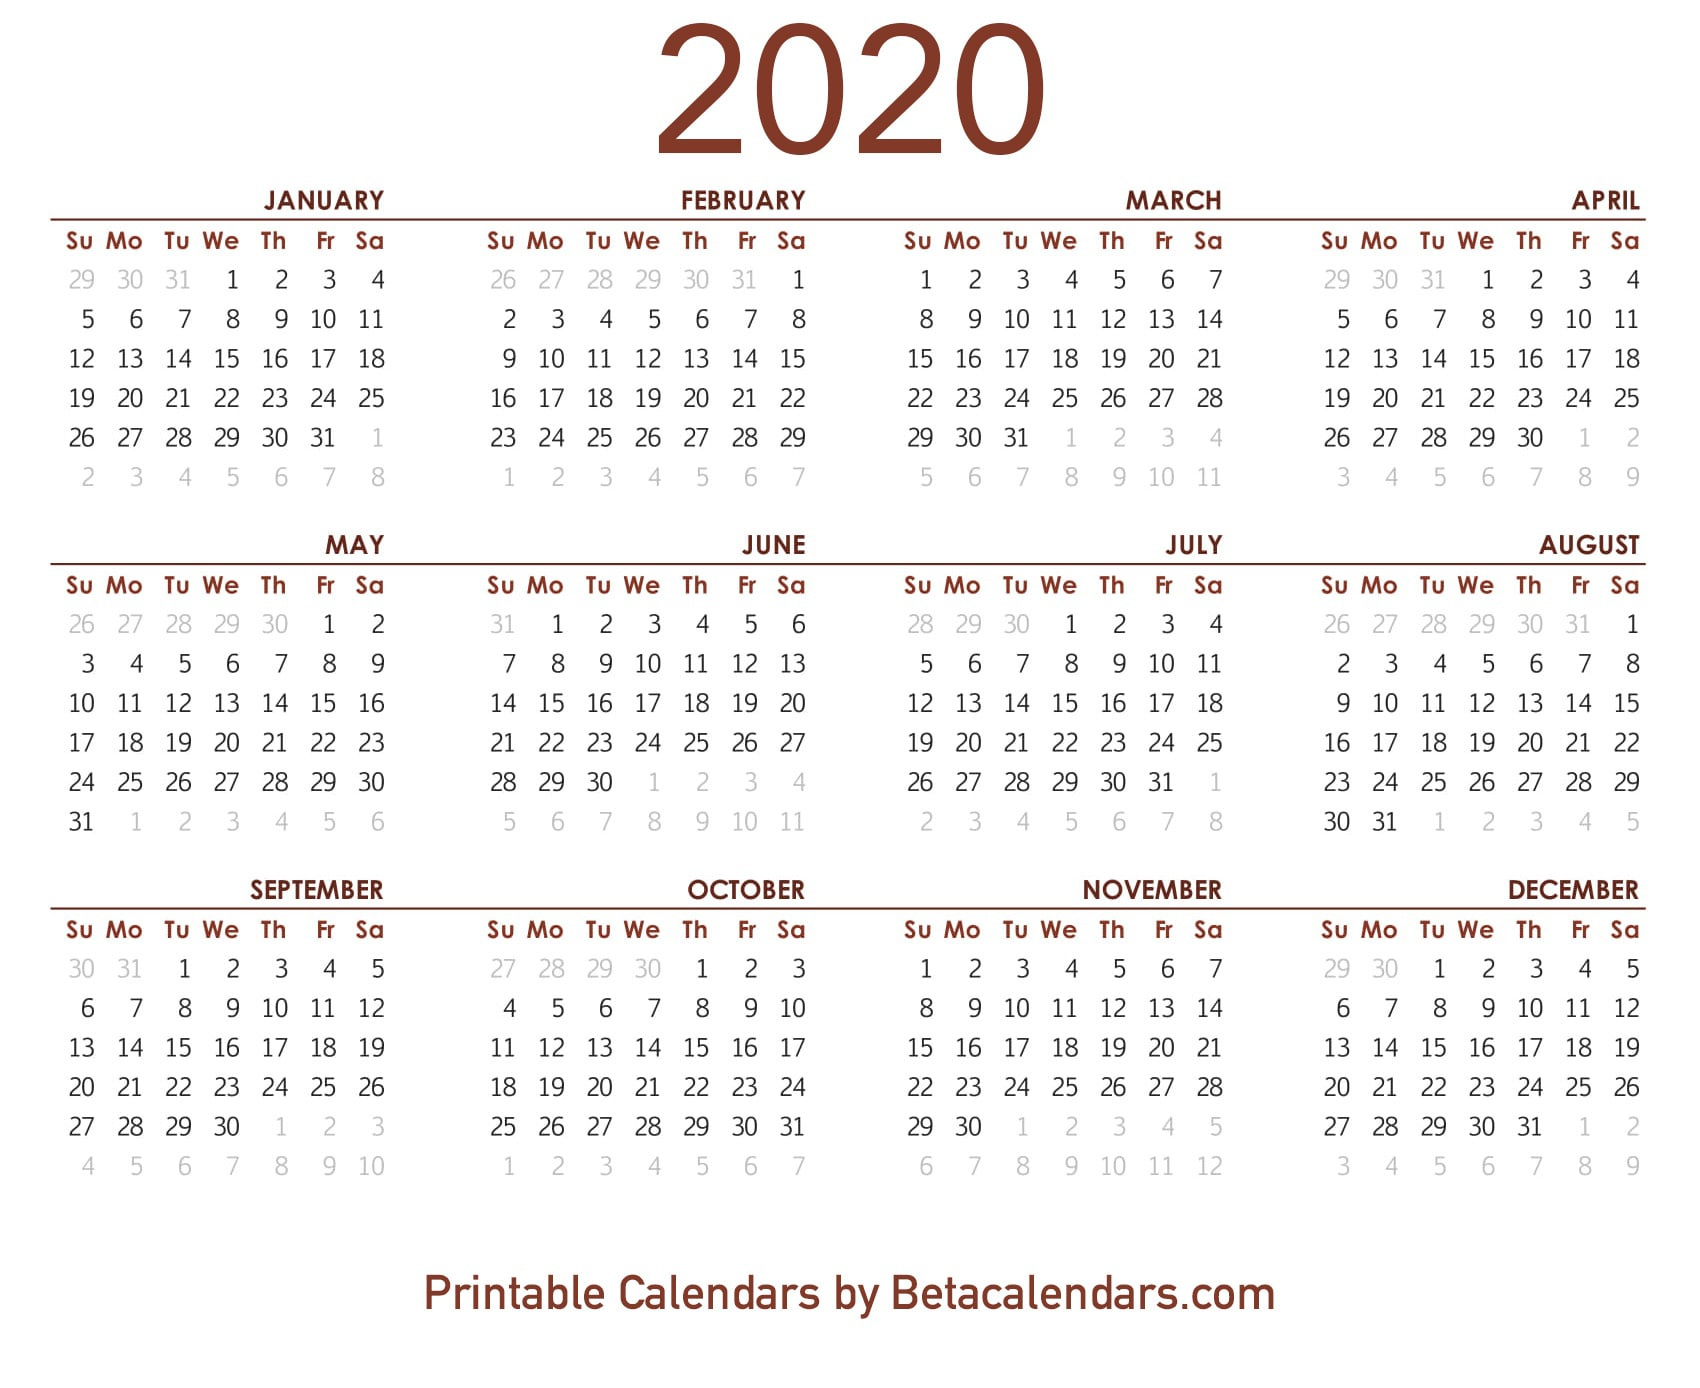 2020 Calendar - Free Printable Yearly Calendar 2020 with regard to 2020 Calendar Free Printable